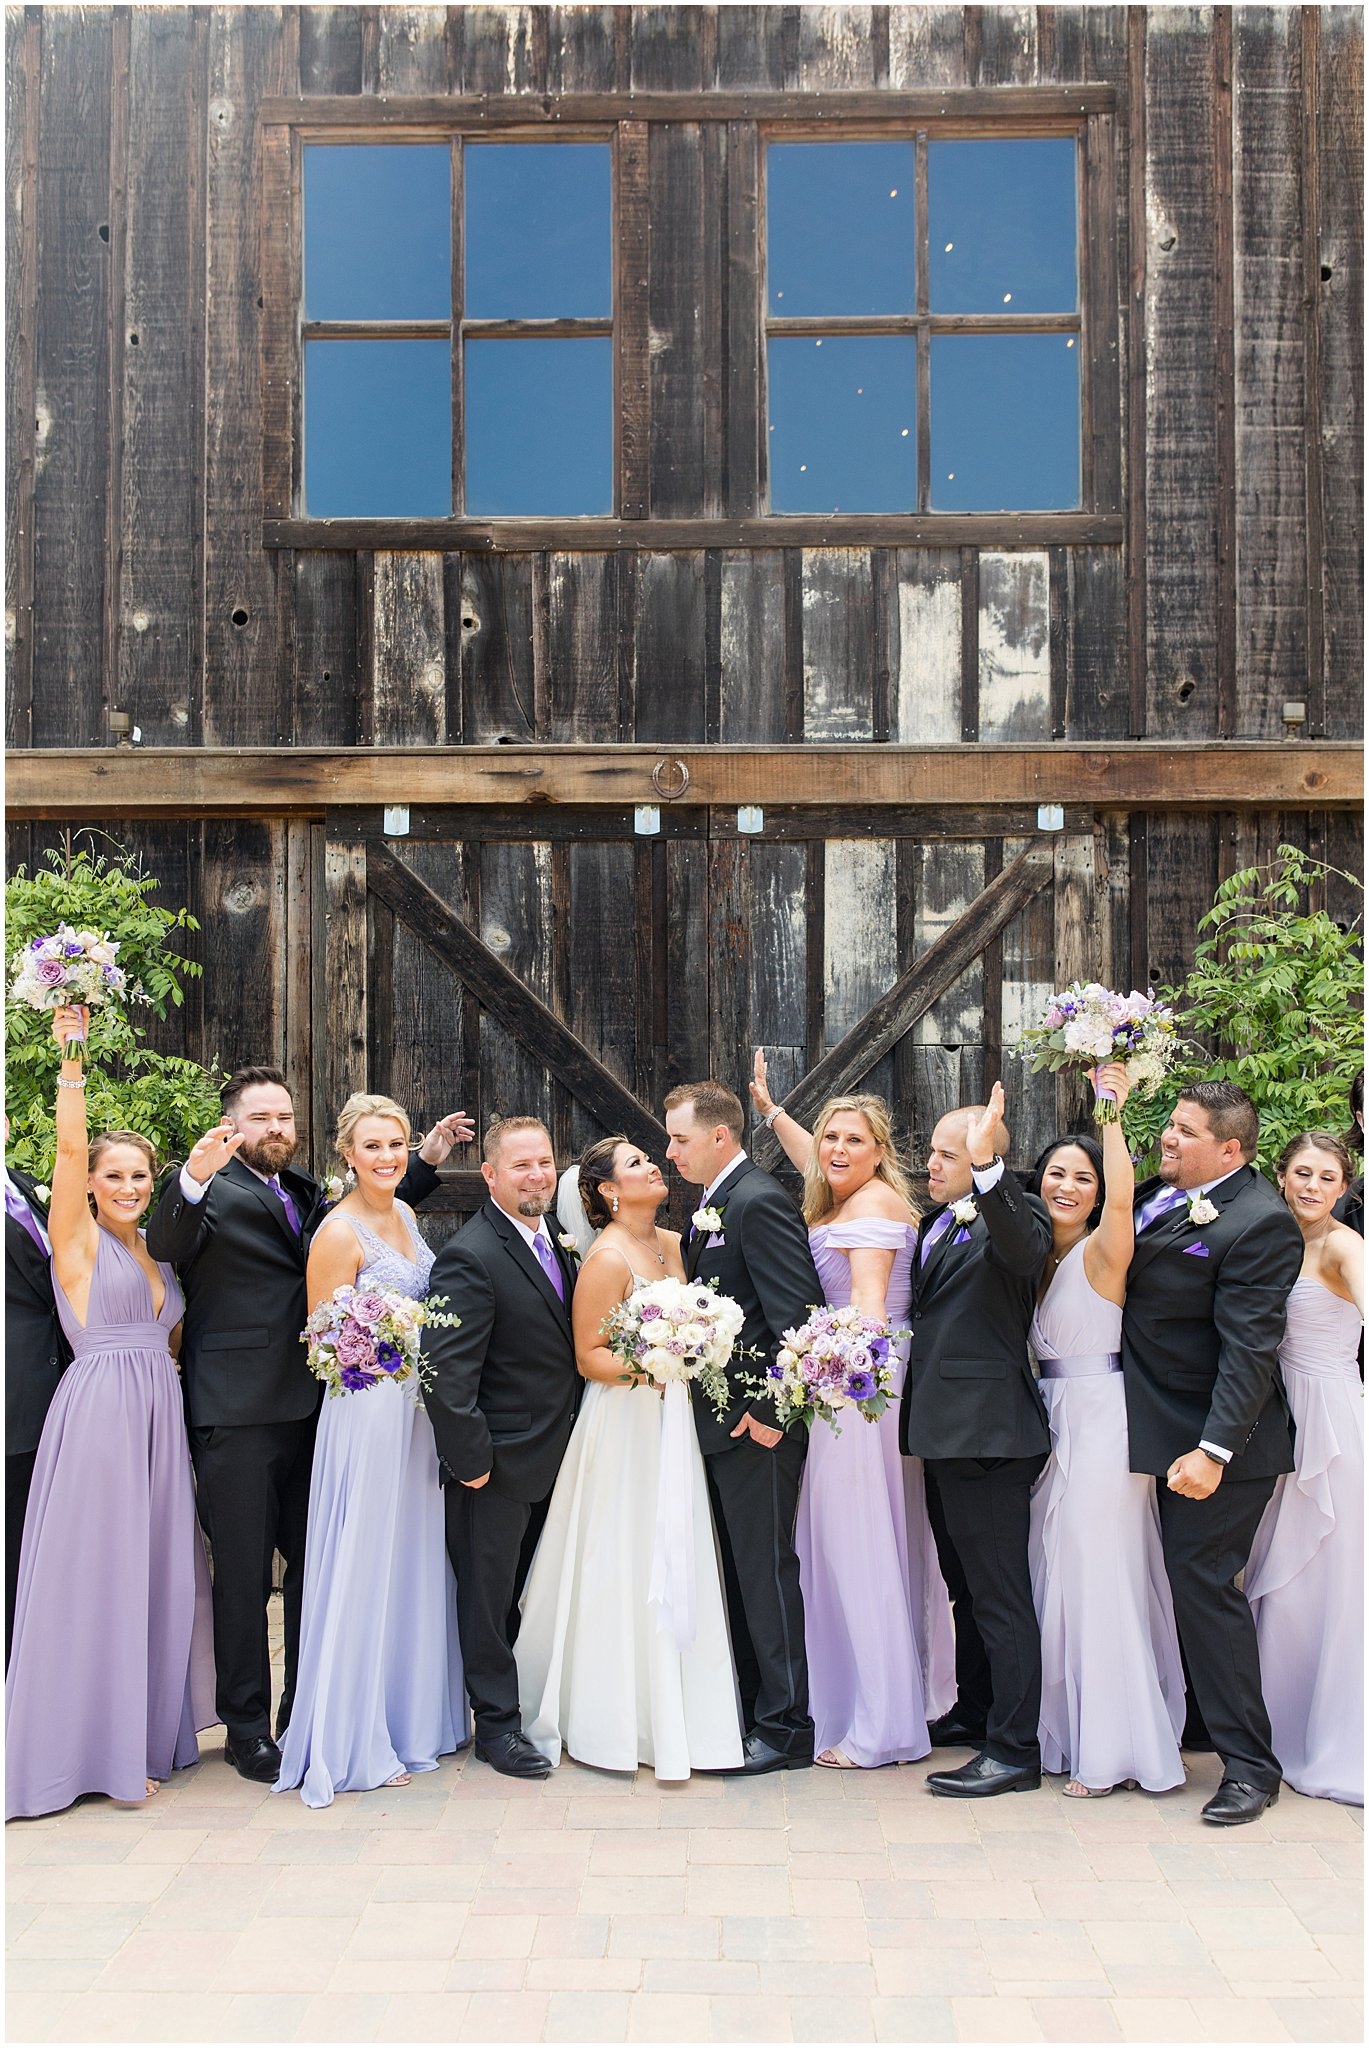 2019 wedding san juan bautista hacienda de leal vineyards bay area wedding photographer_0035.jpg